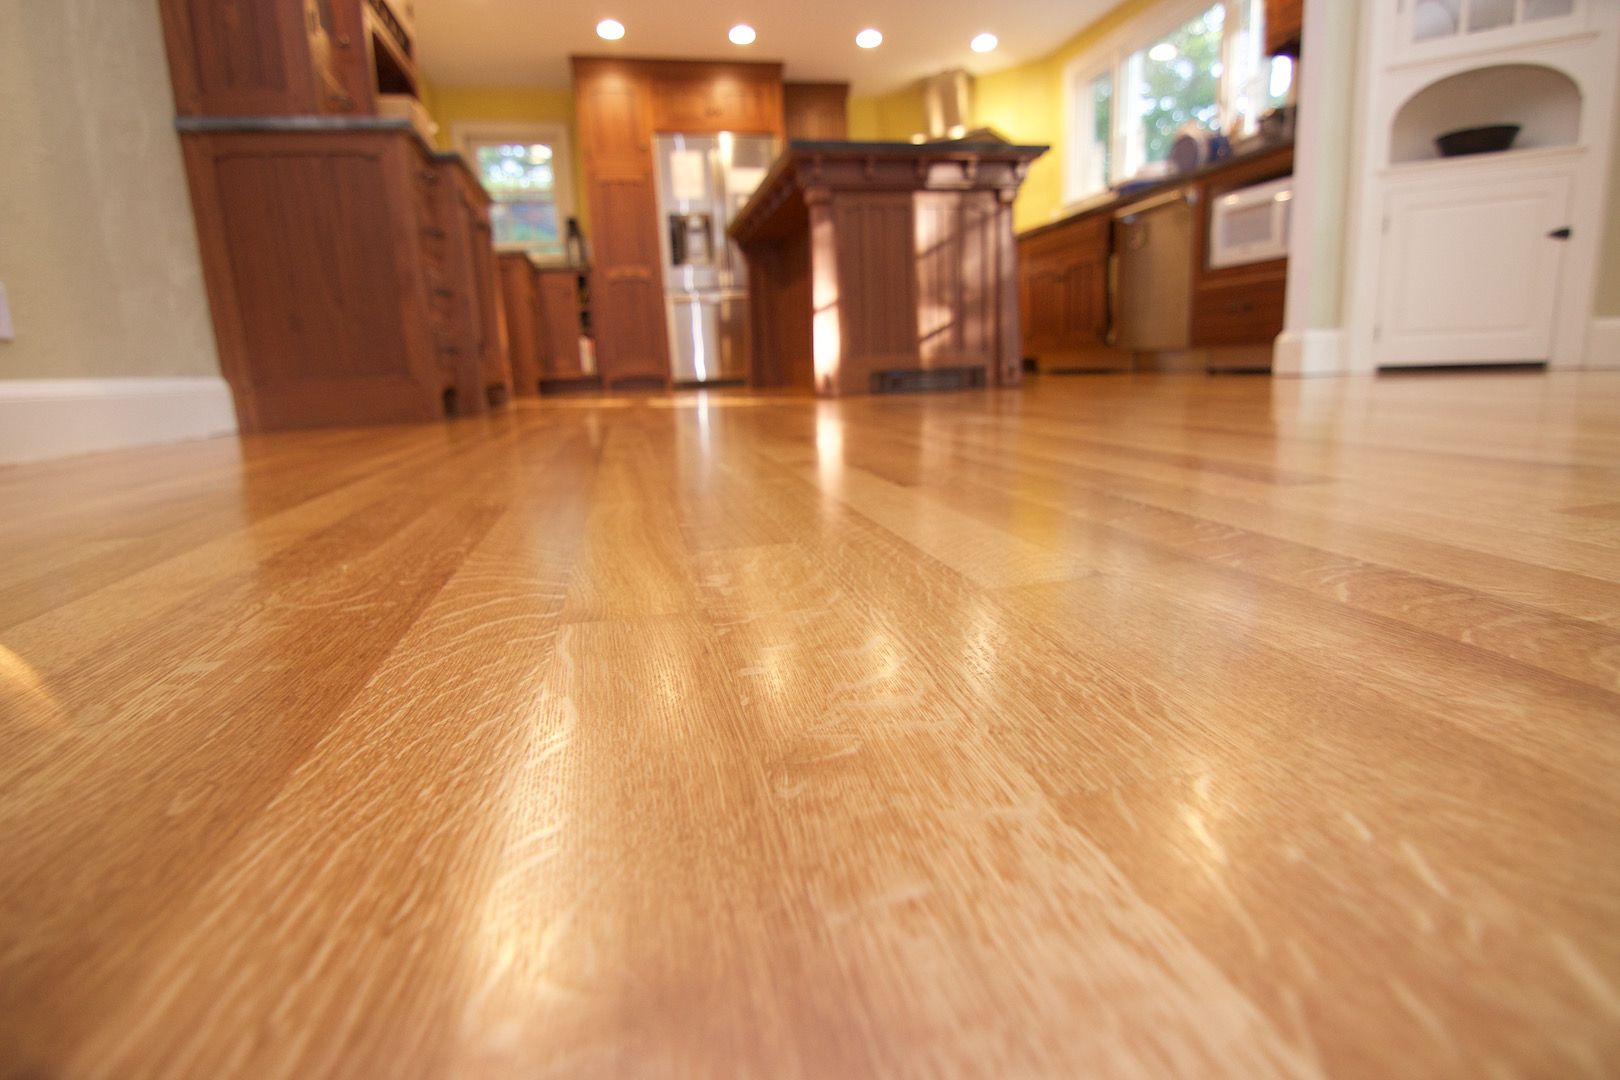 polyurethane wood floor finish how to Gandswoodfloors